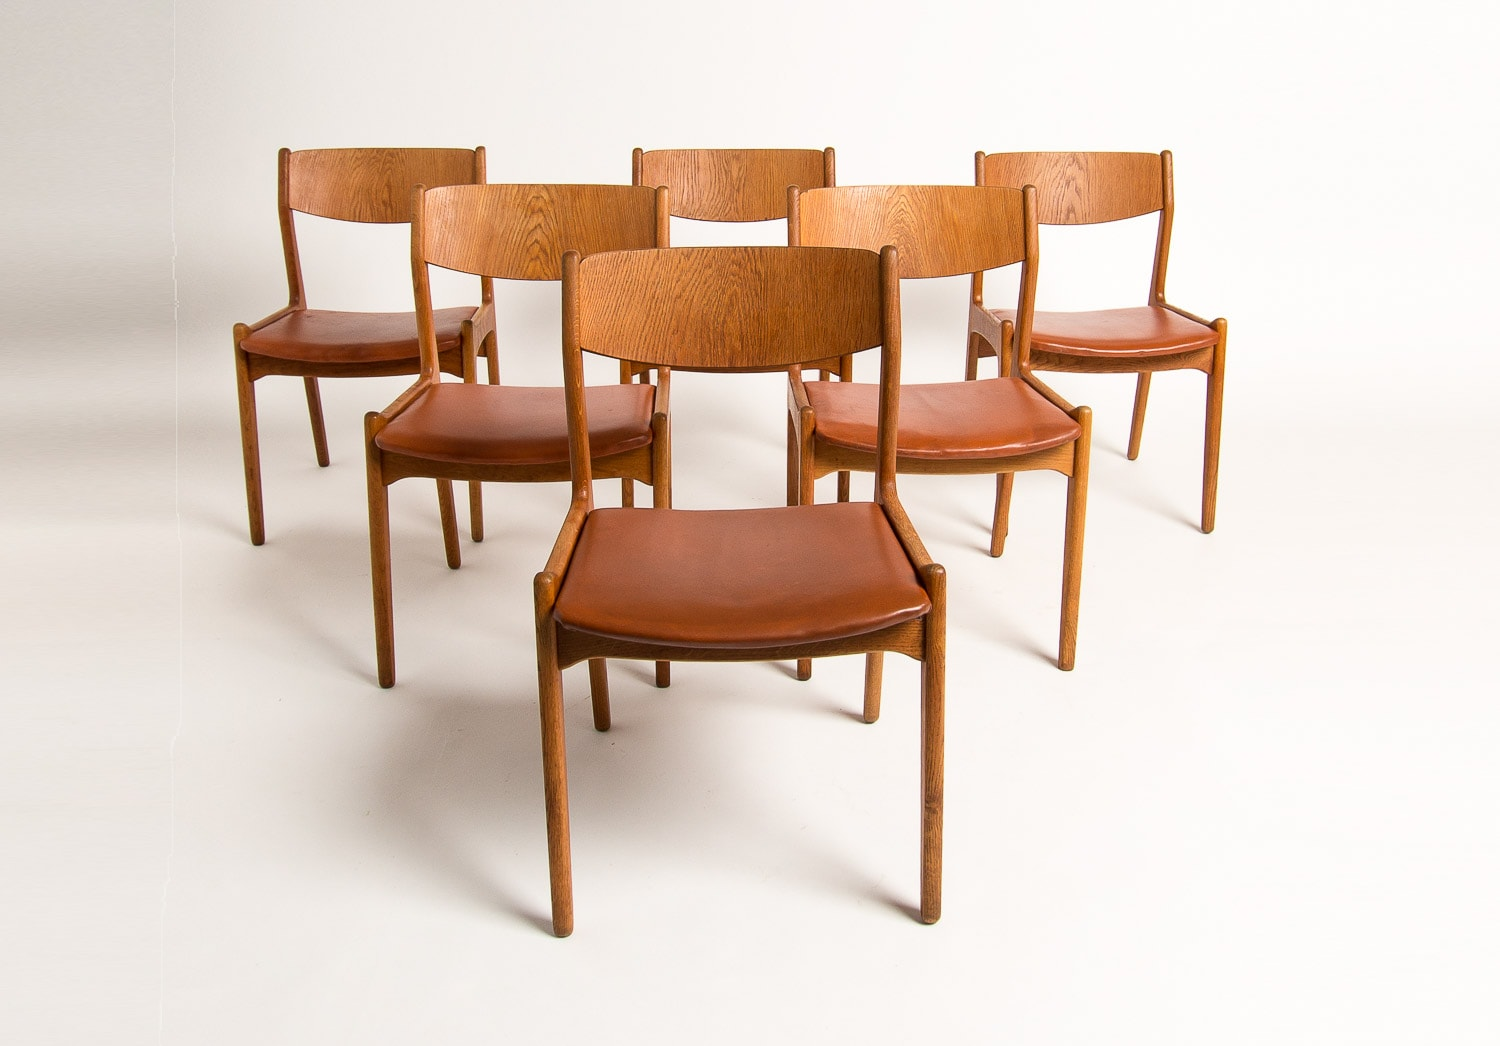 Danish design mid century dining chairs in Oak & Leather 1950's